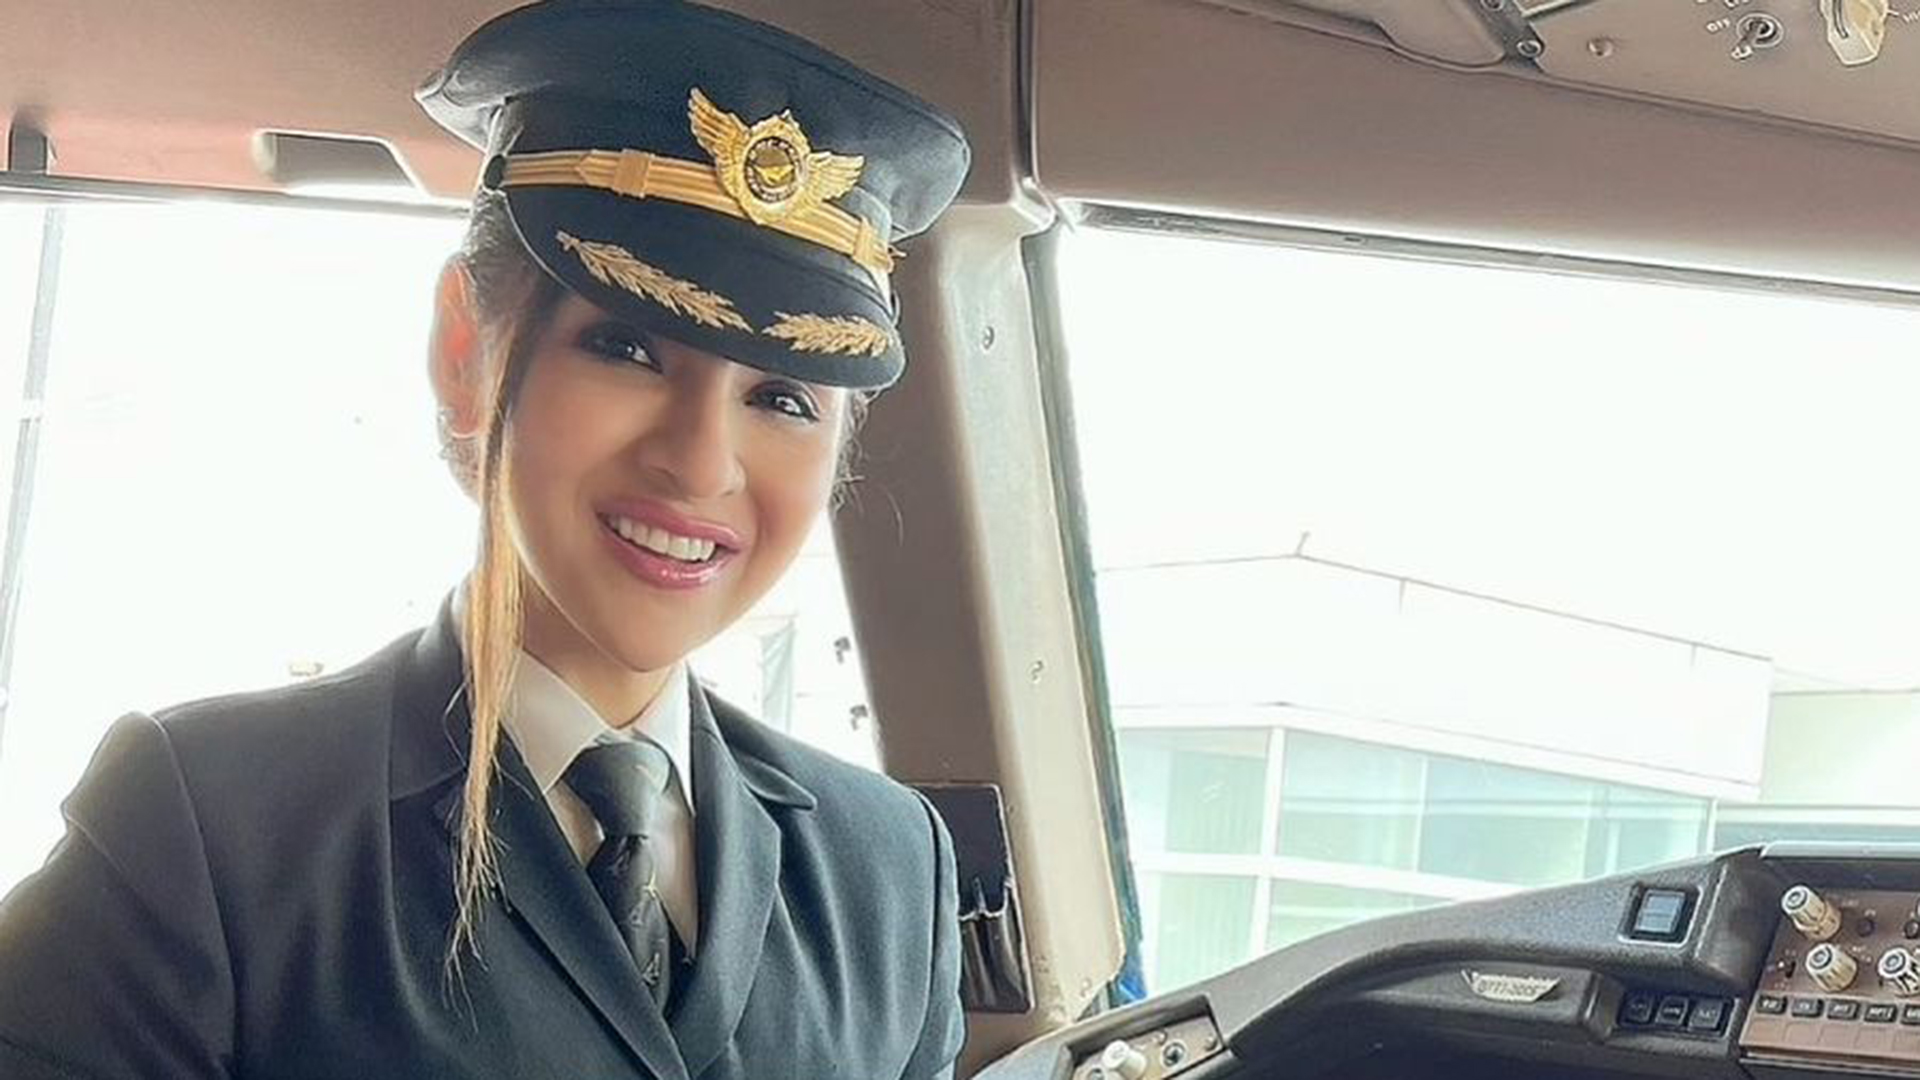 Woman Pilot To Represent India For Generation Equality At United Nations